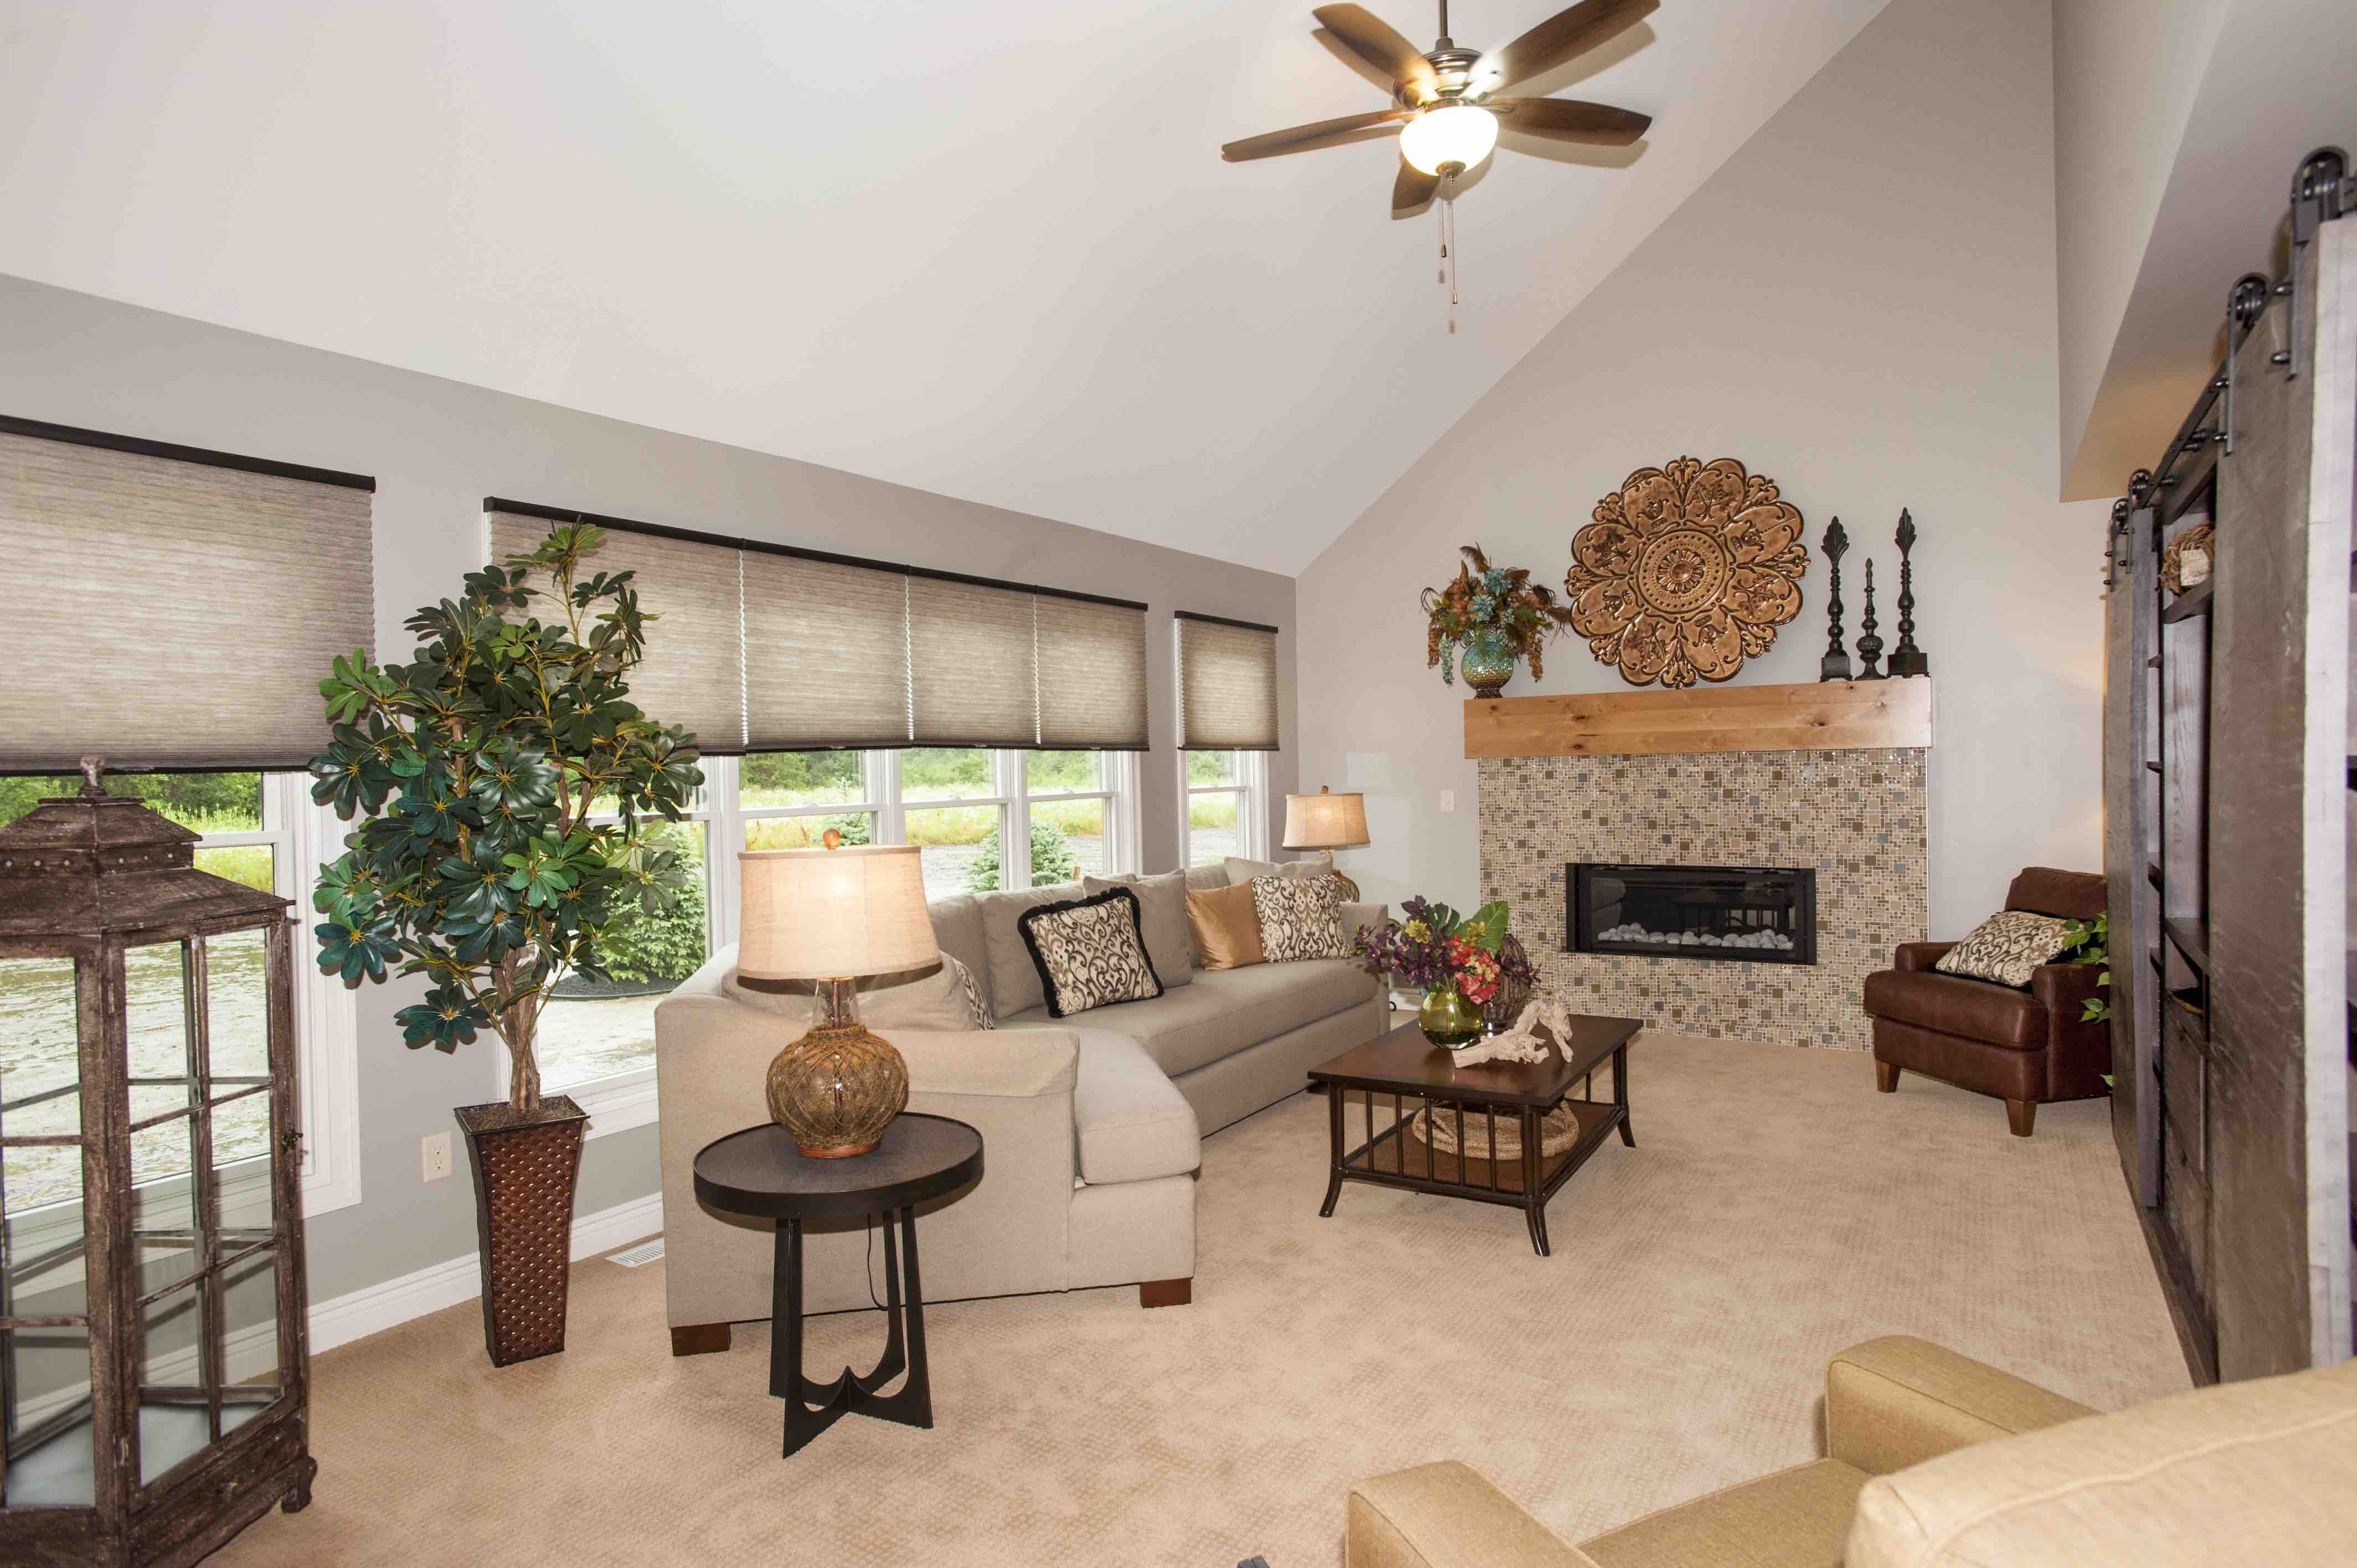 Half Vaulted Ceiling Living Room Google Search Vaulted Ceiling Living Room Chandelier In Living Room Vaulted Ceiling Ideas